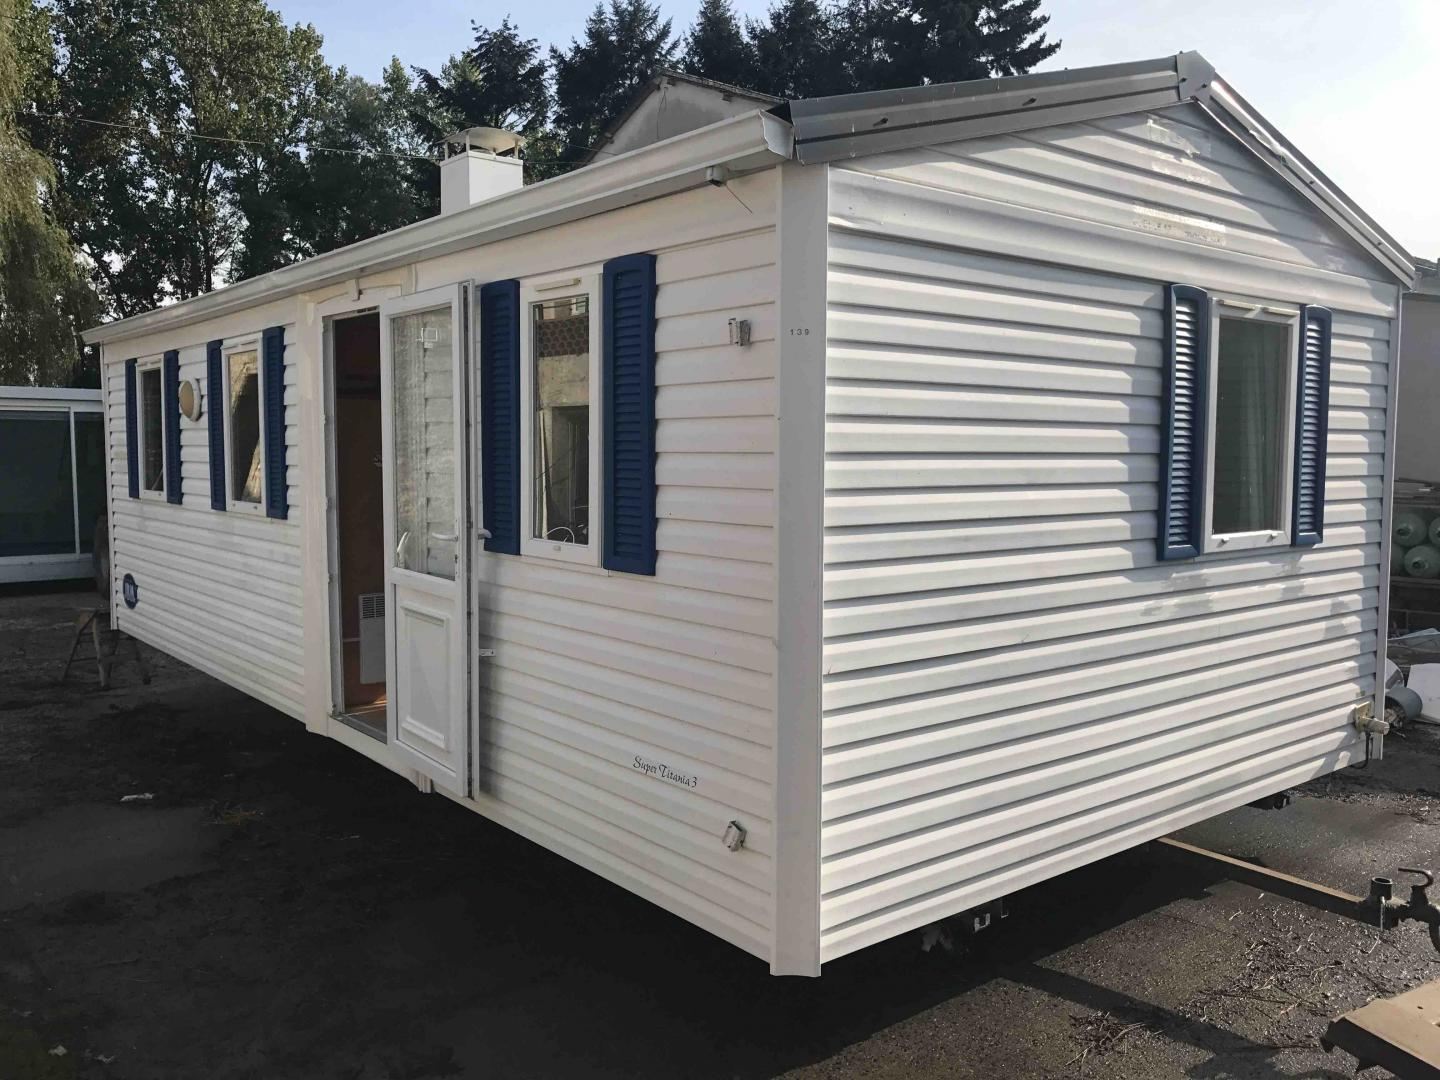 Mobil home occasion.be mobil home occasion a vendre en vendee